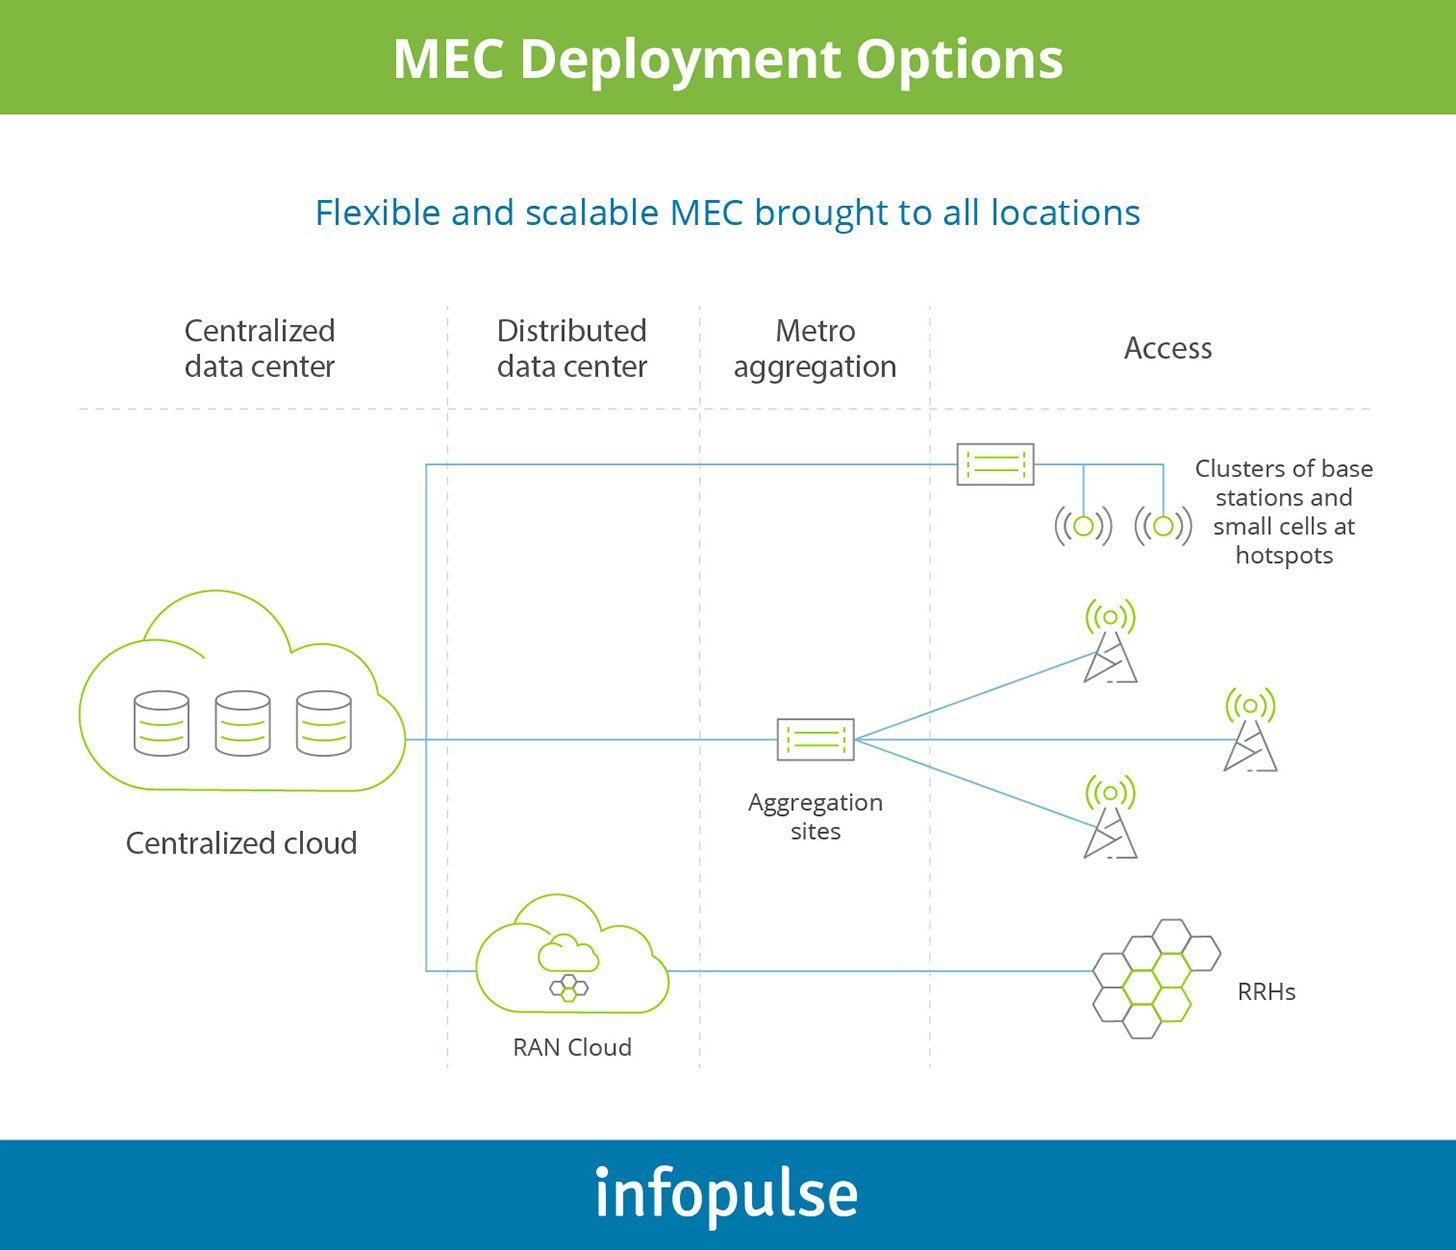 MEC Deployment options - Infopulse - 1